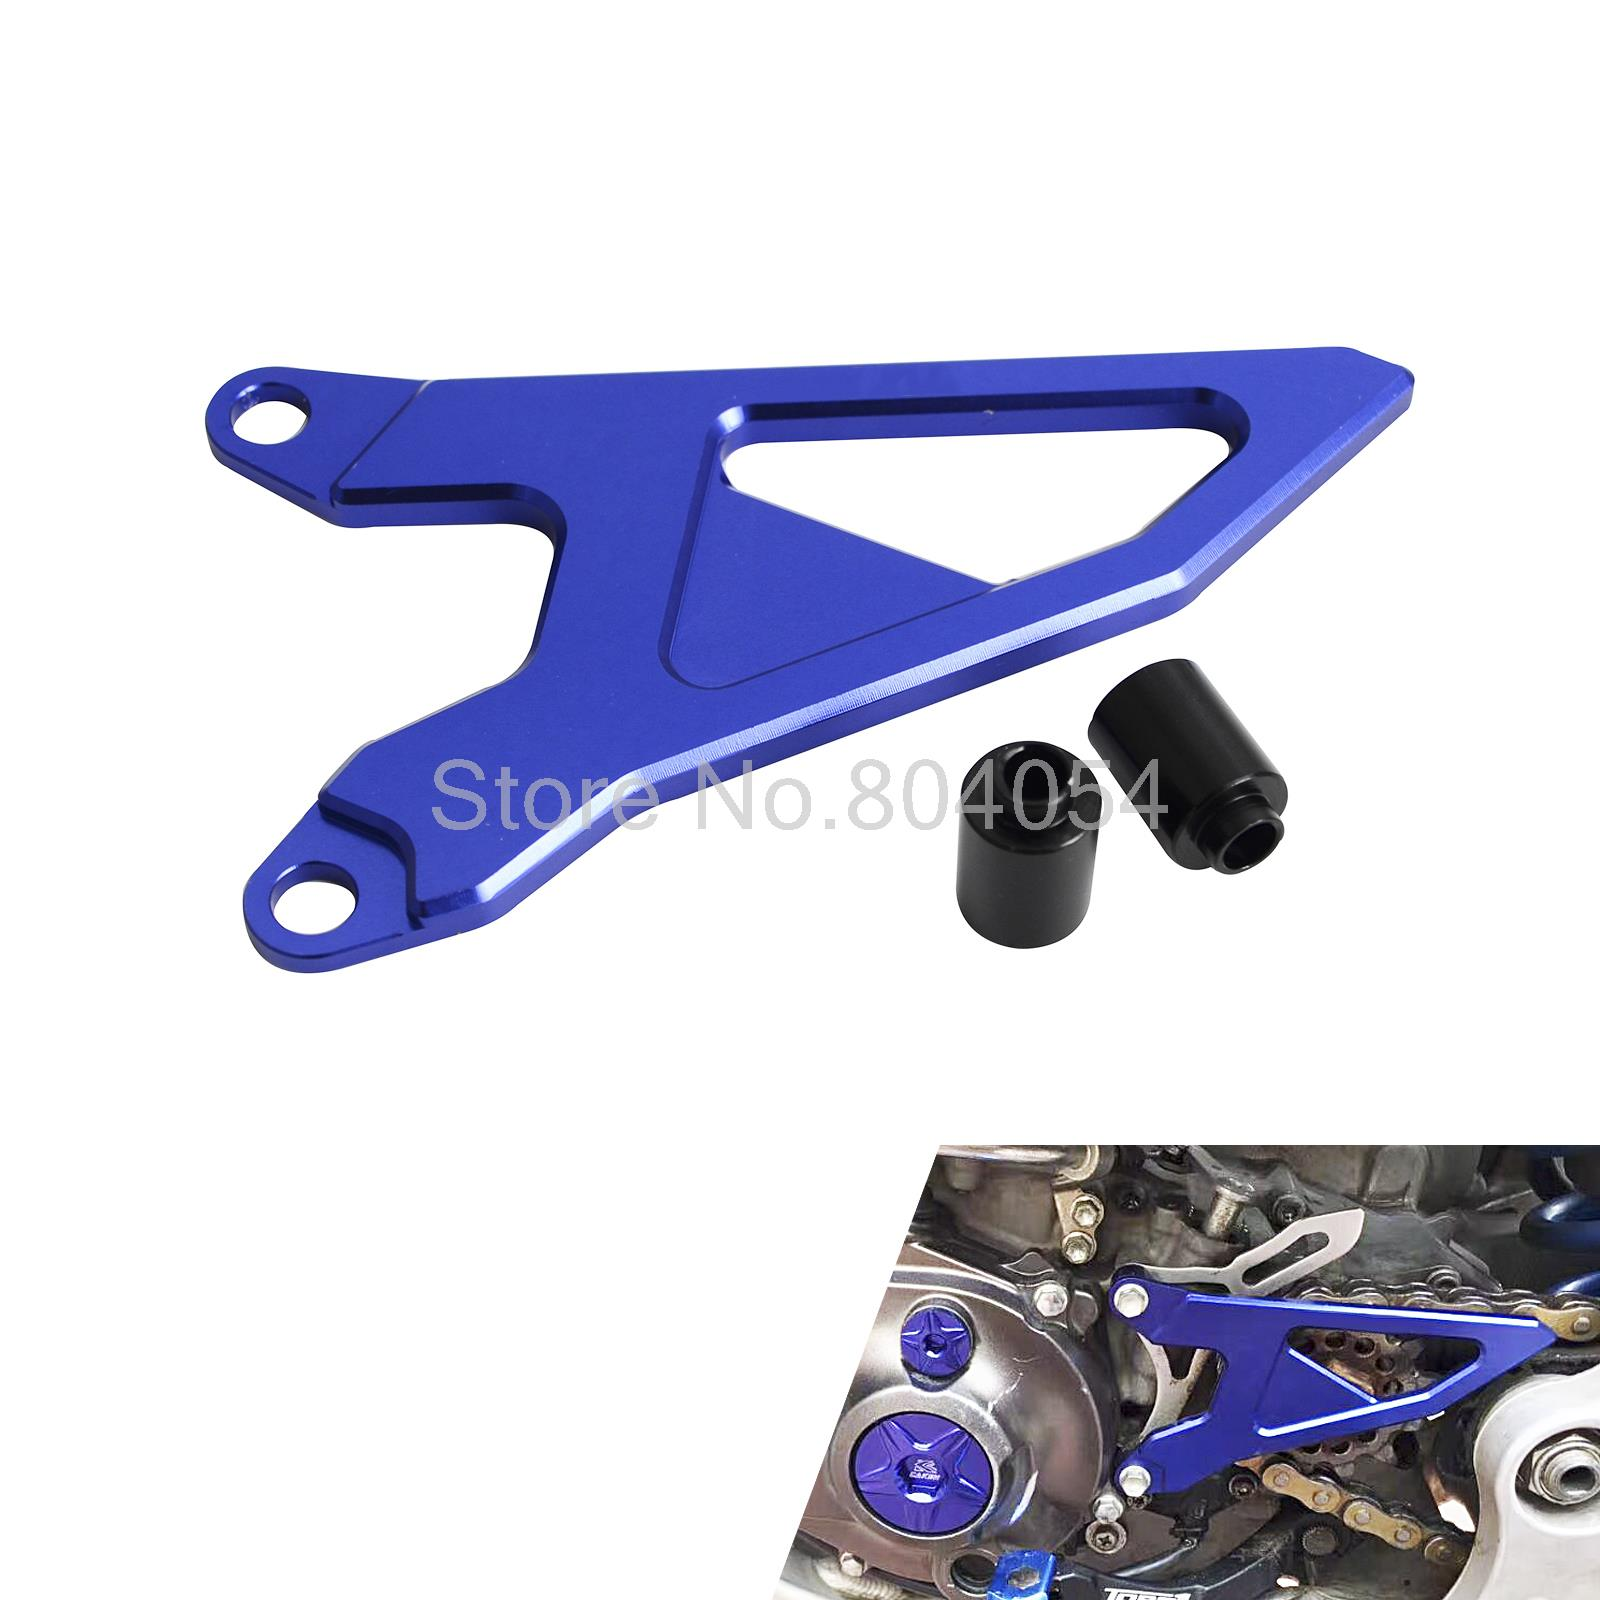 CNC Billet Aluminum Front Sprocket Cover For Yamaha YZ 250F 450F 2014-2016 YZ250FX 2015 2016 WR250F 2015 NEW<br>